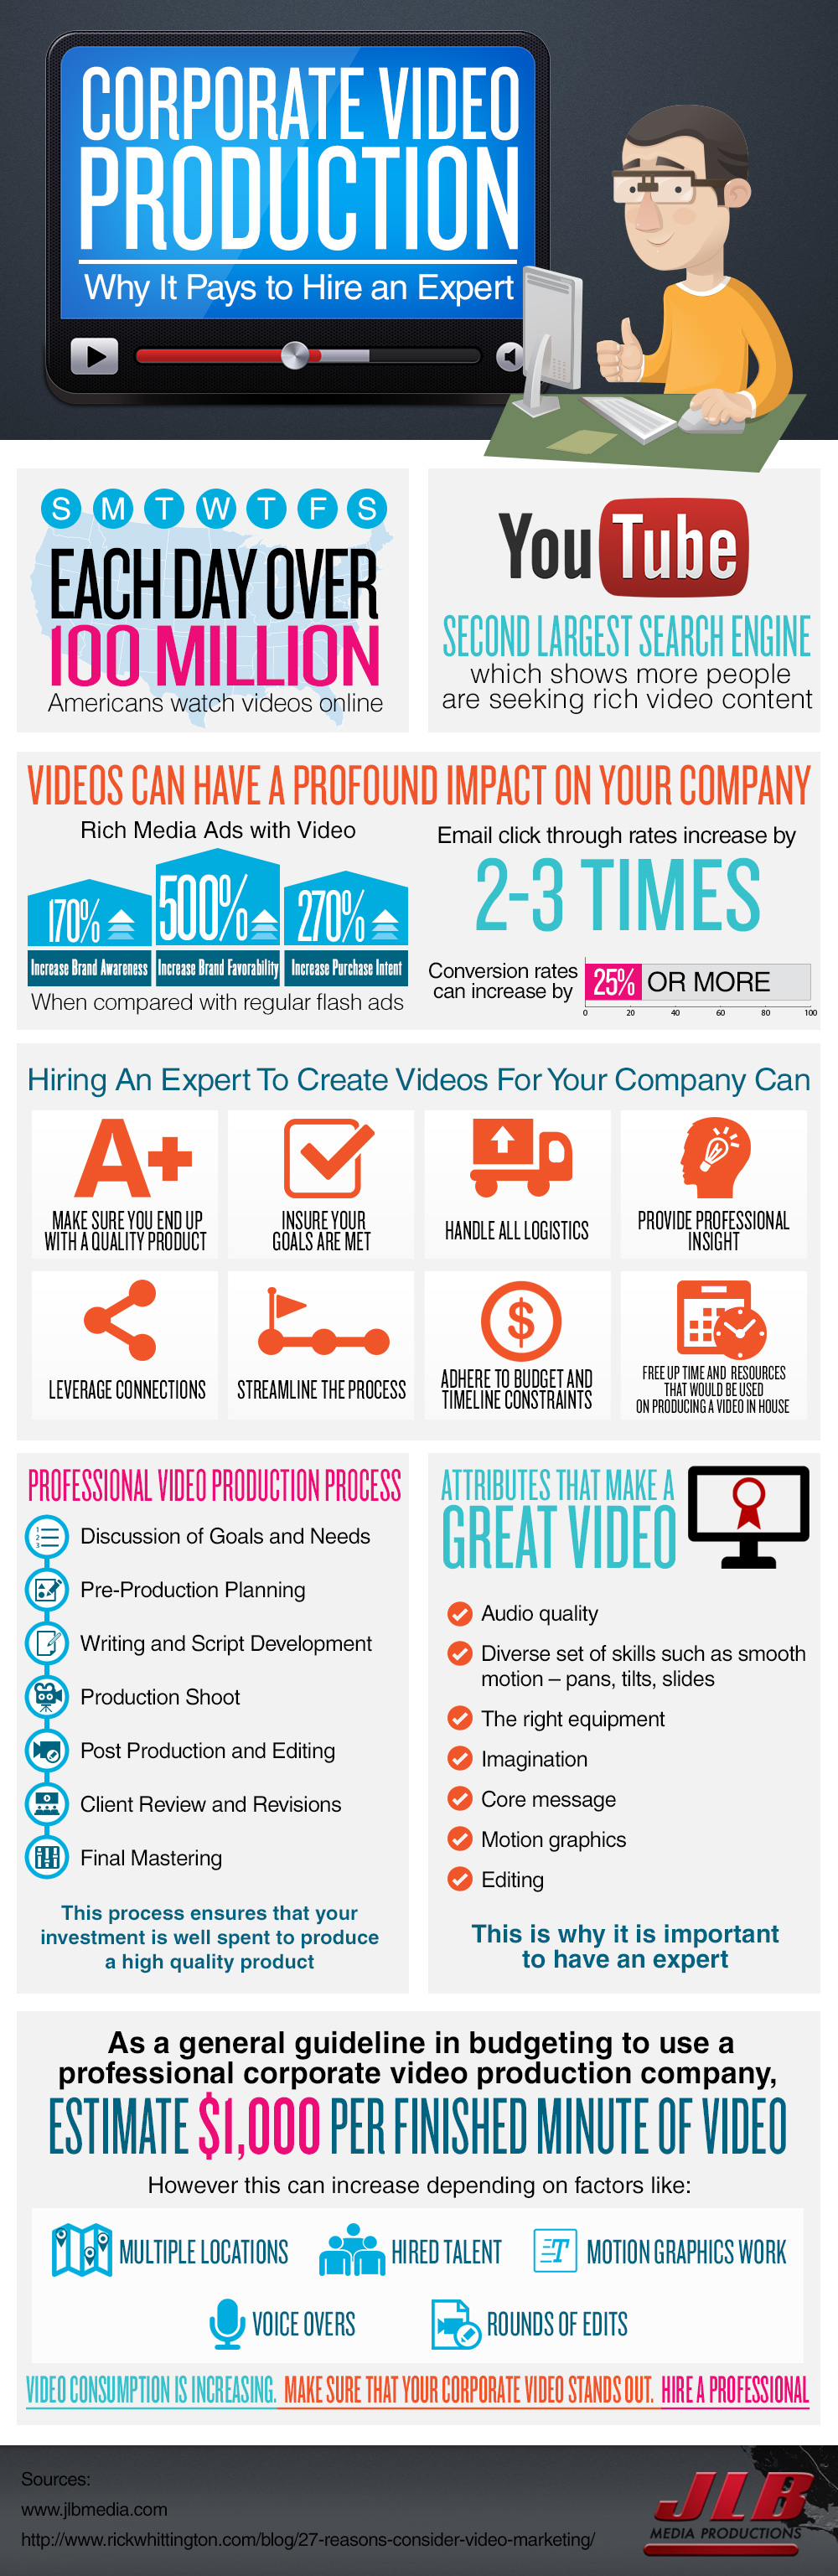 Corporate Video Production Infographic Design Infographic Video Videoproduction Corporatevideo